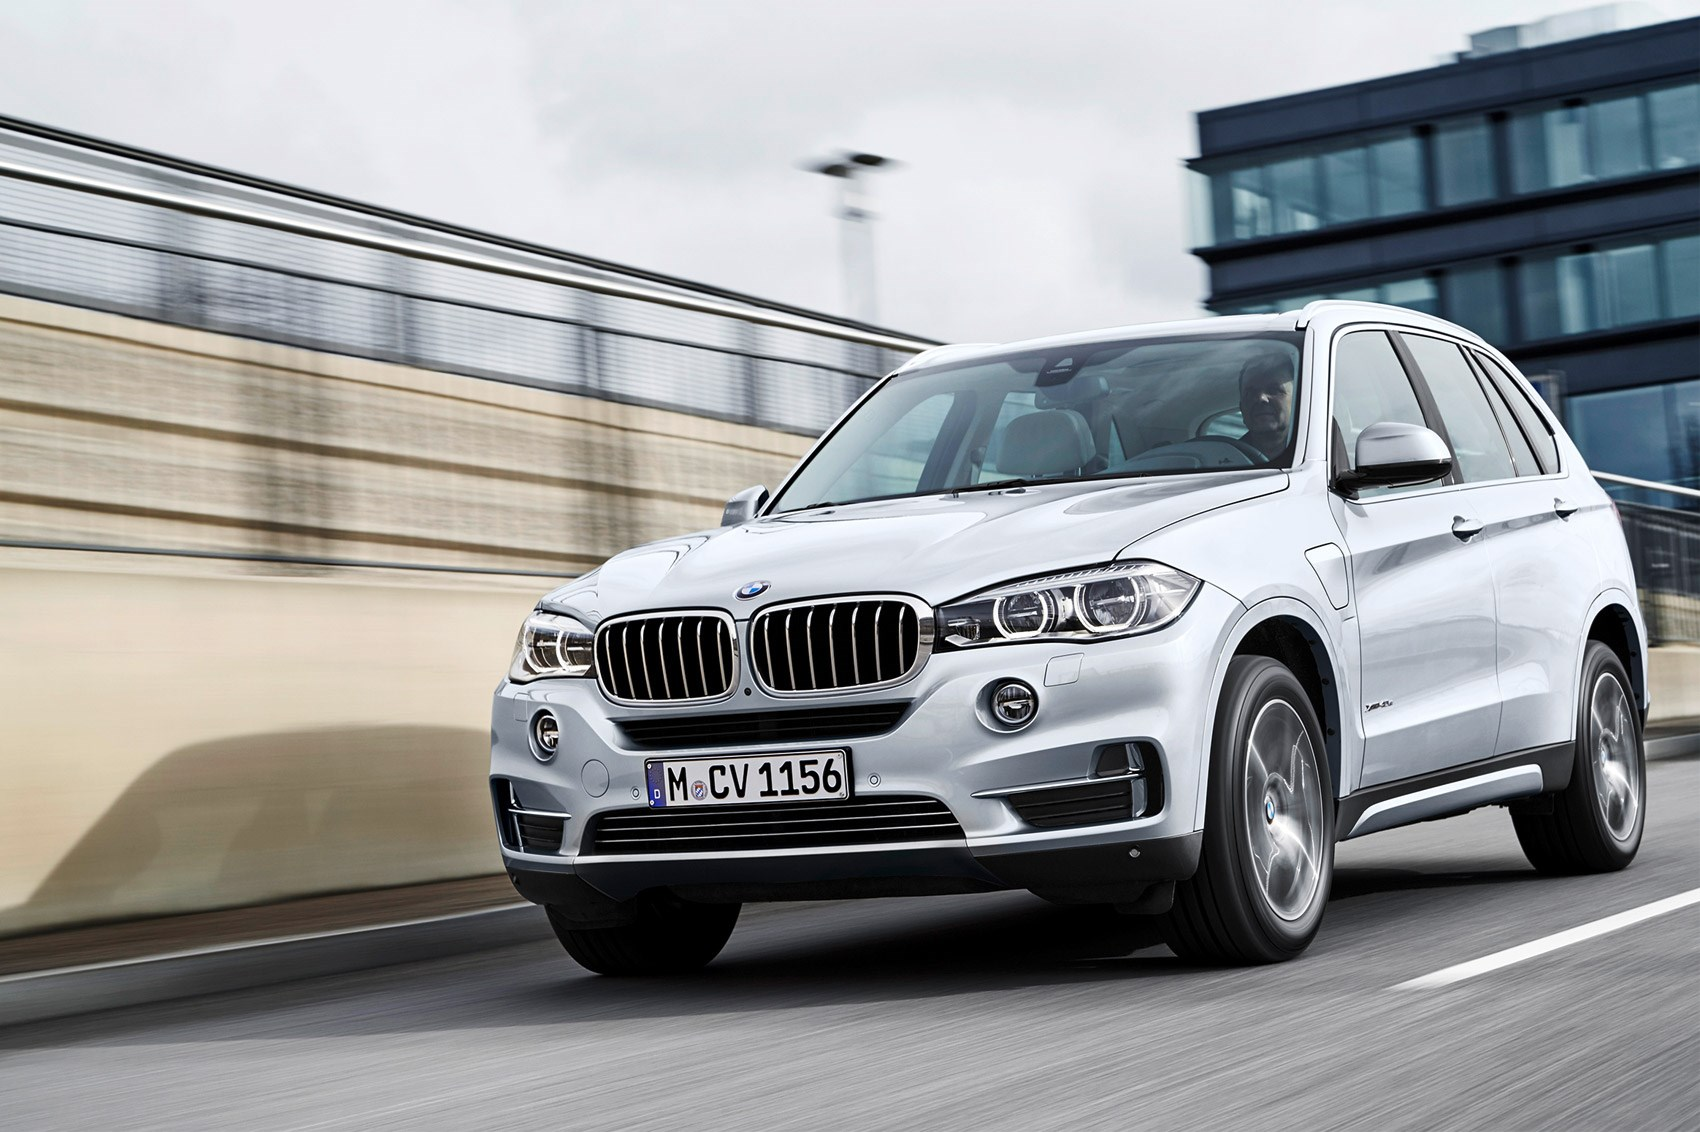 bmw x5 xdrive 40e first drive car june 2016 by car magazine. Black Bedroom Furniture Sets. Home Design Ideas